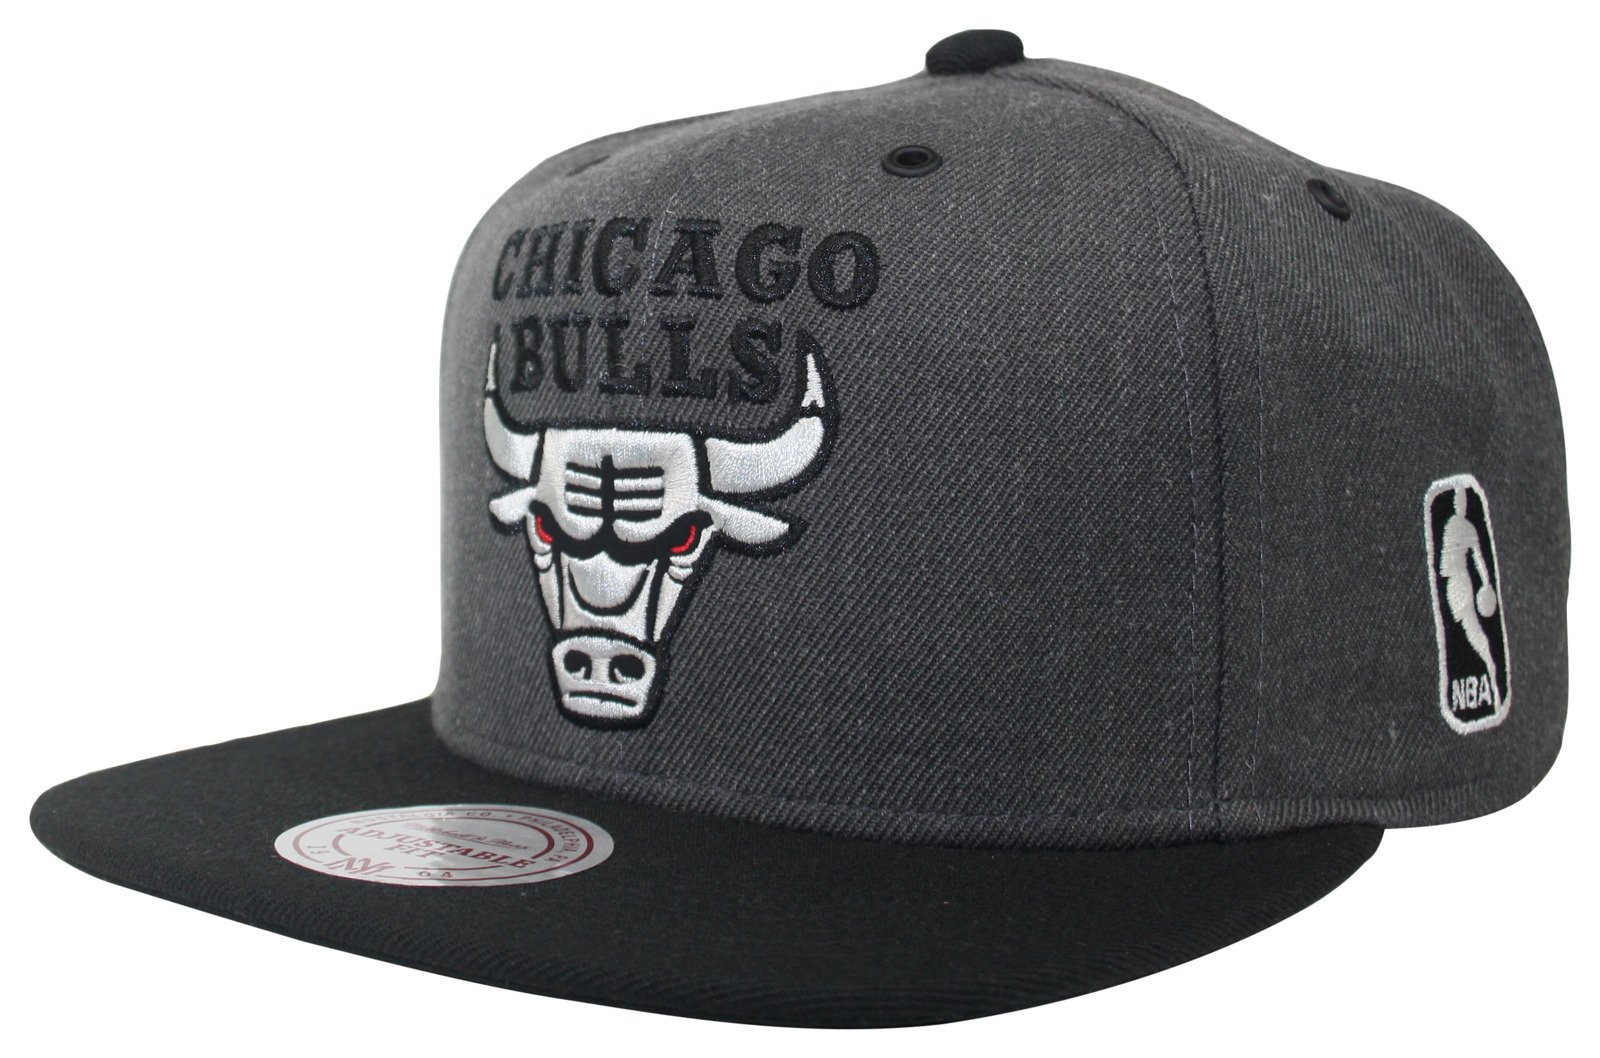 detailed look 3344a db455 Mitchell   Ness Chicago Bulls Snapback - Basketo.pl